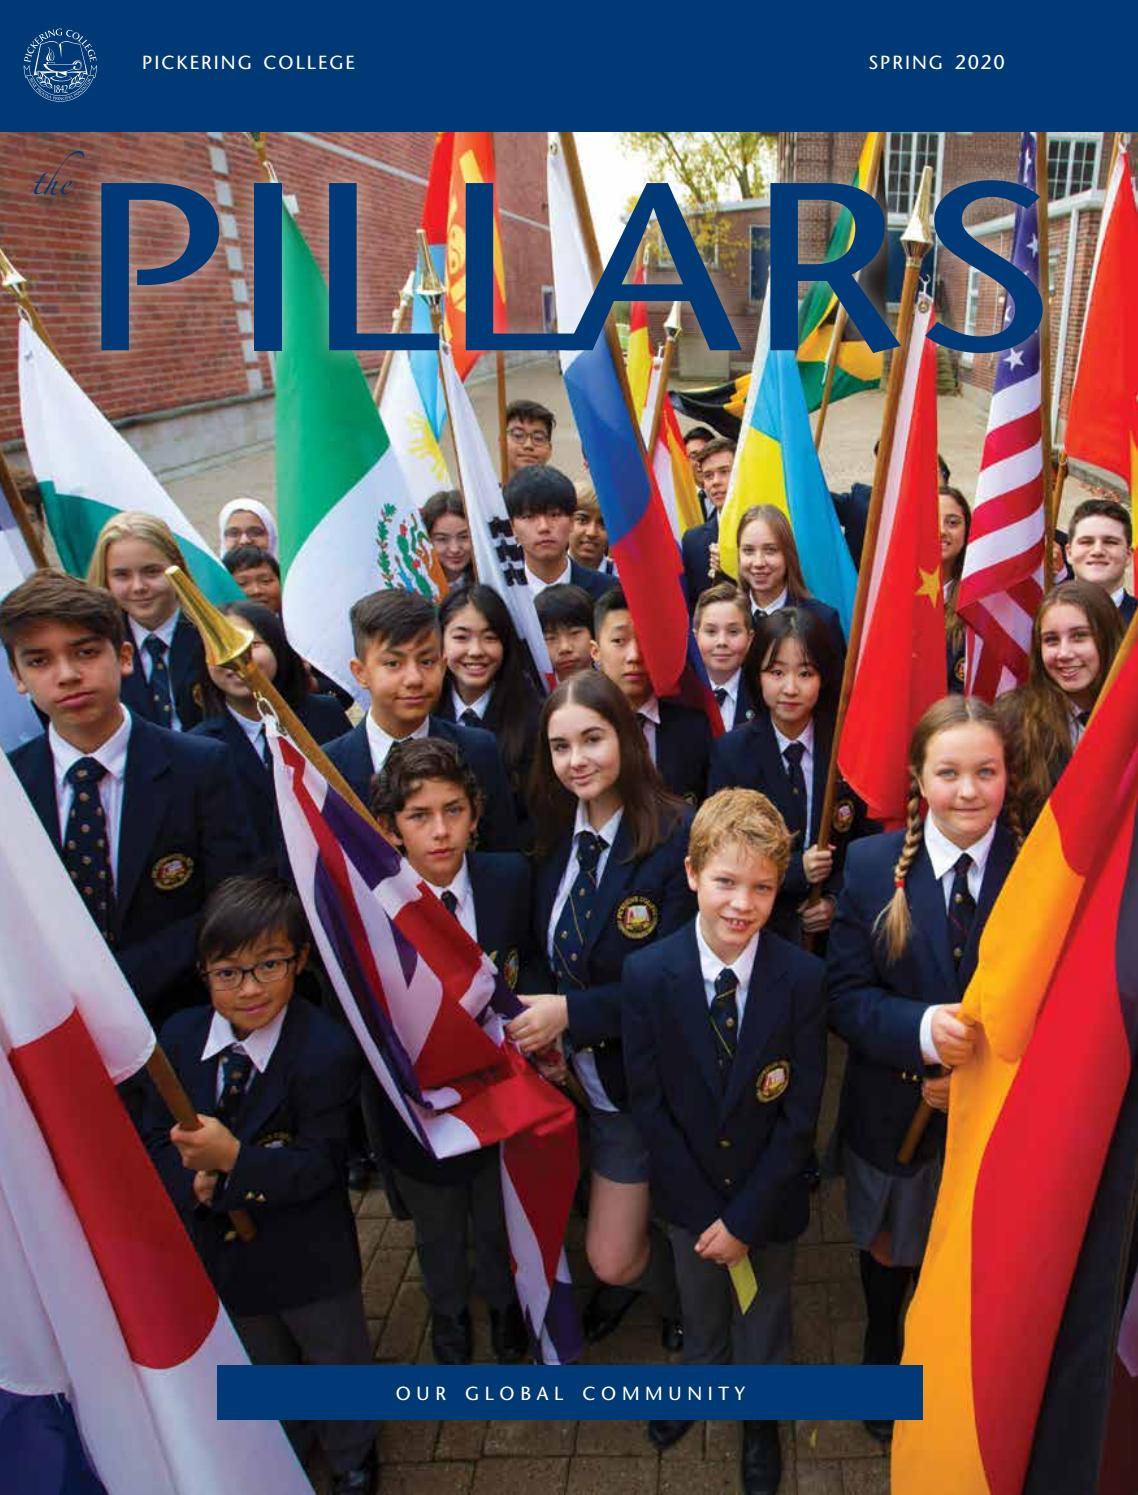 The Pillars Spring 2020 By Pickering College Issuu